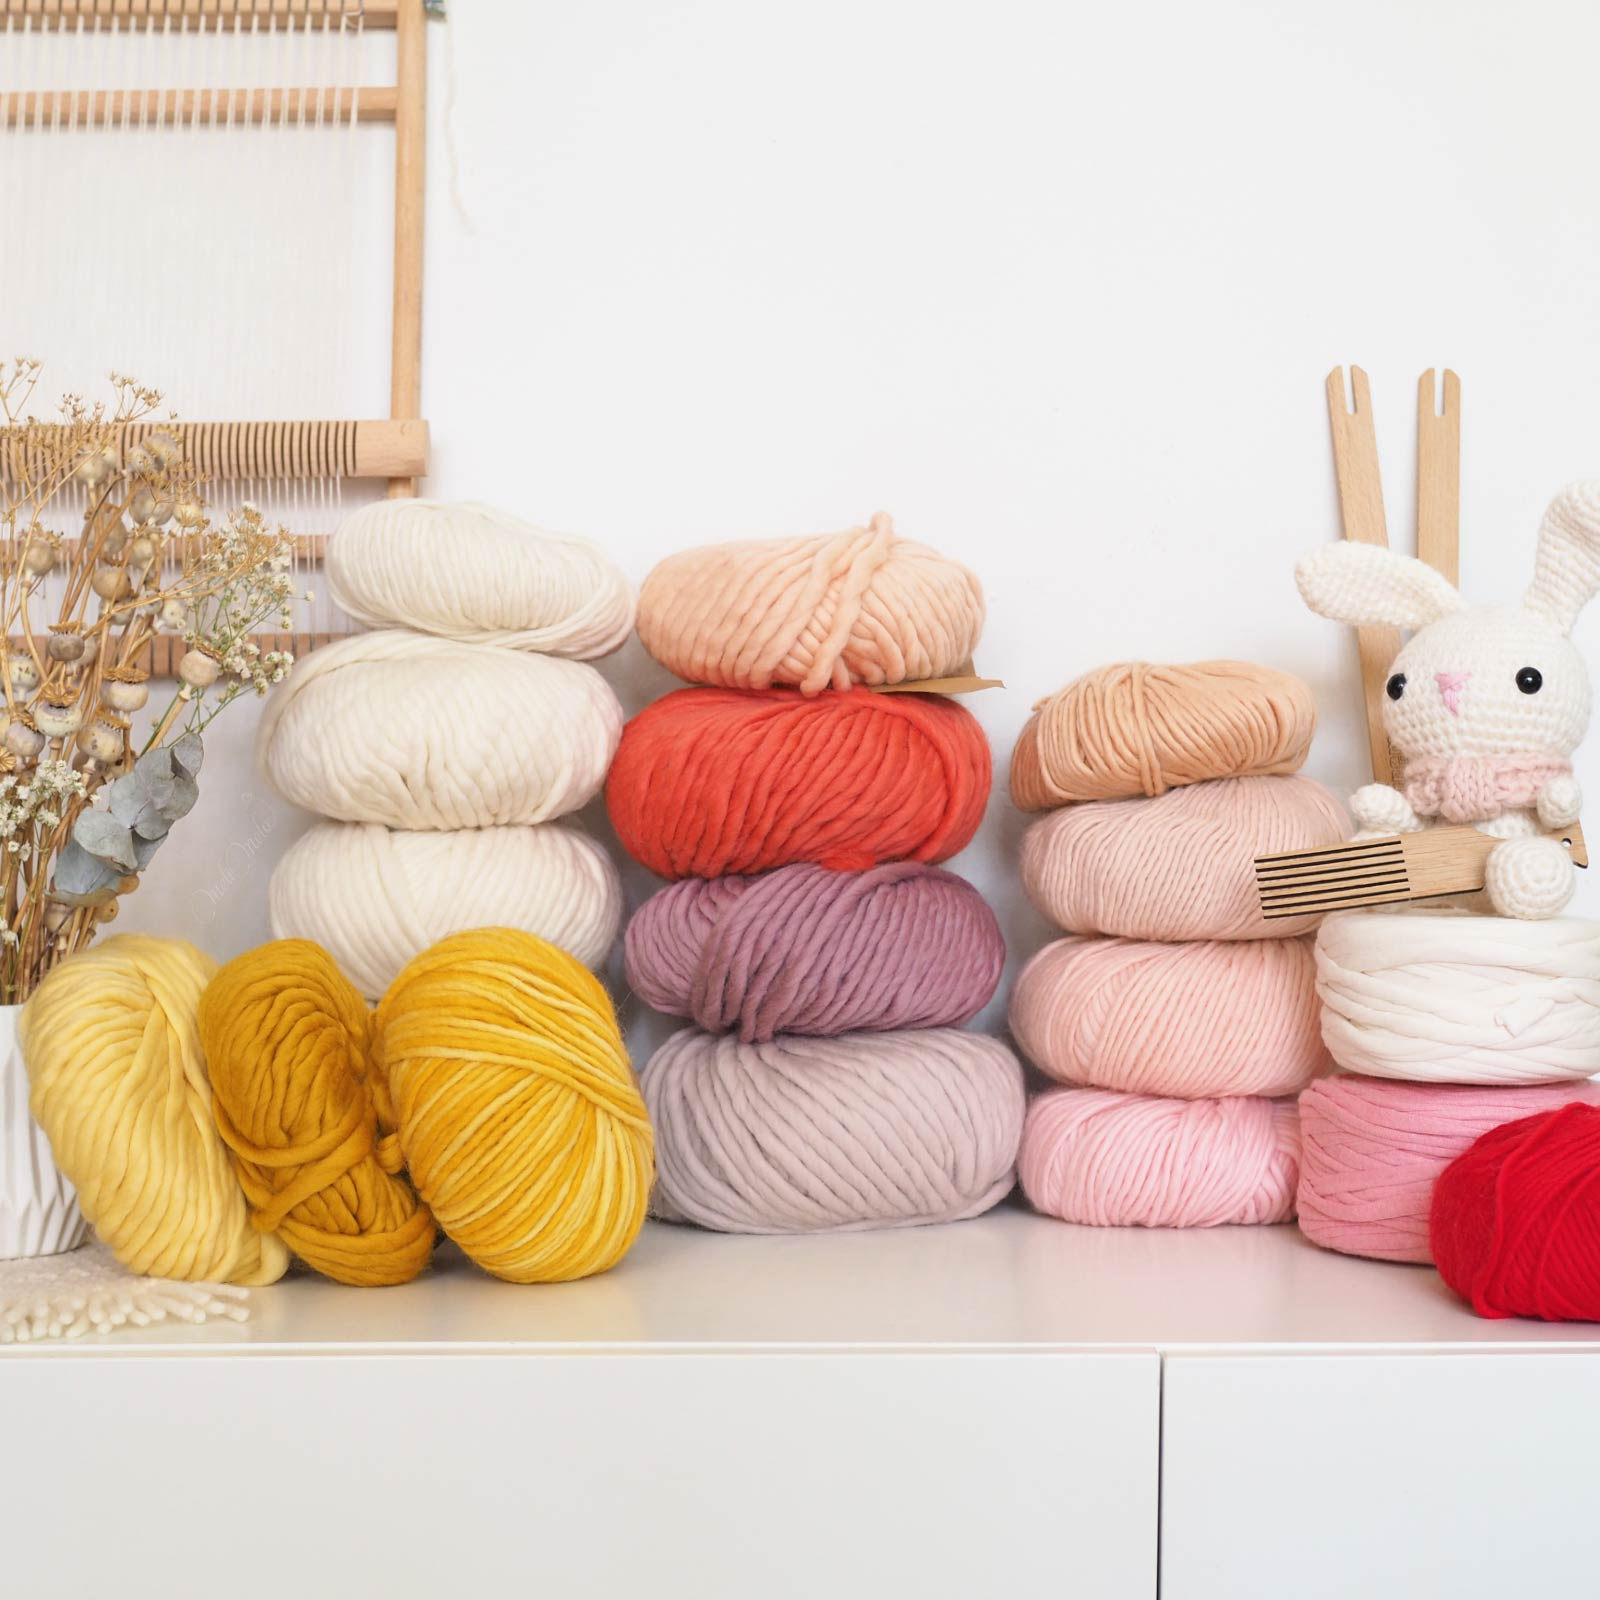 laine kit tissage défi we are knitters wool and the gang rose jaune corail laboutiquedemelimelo